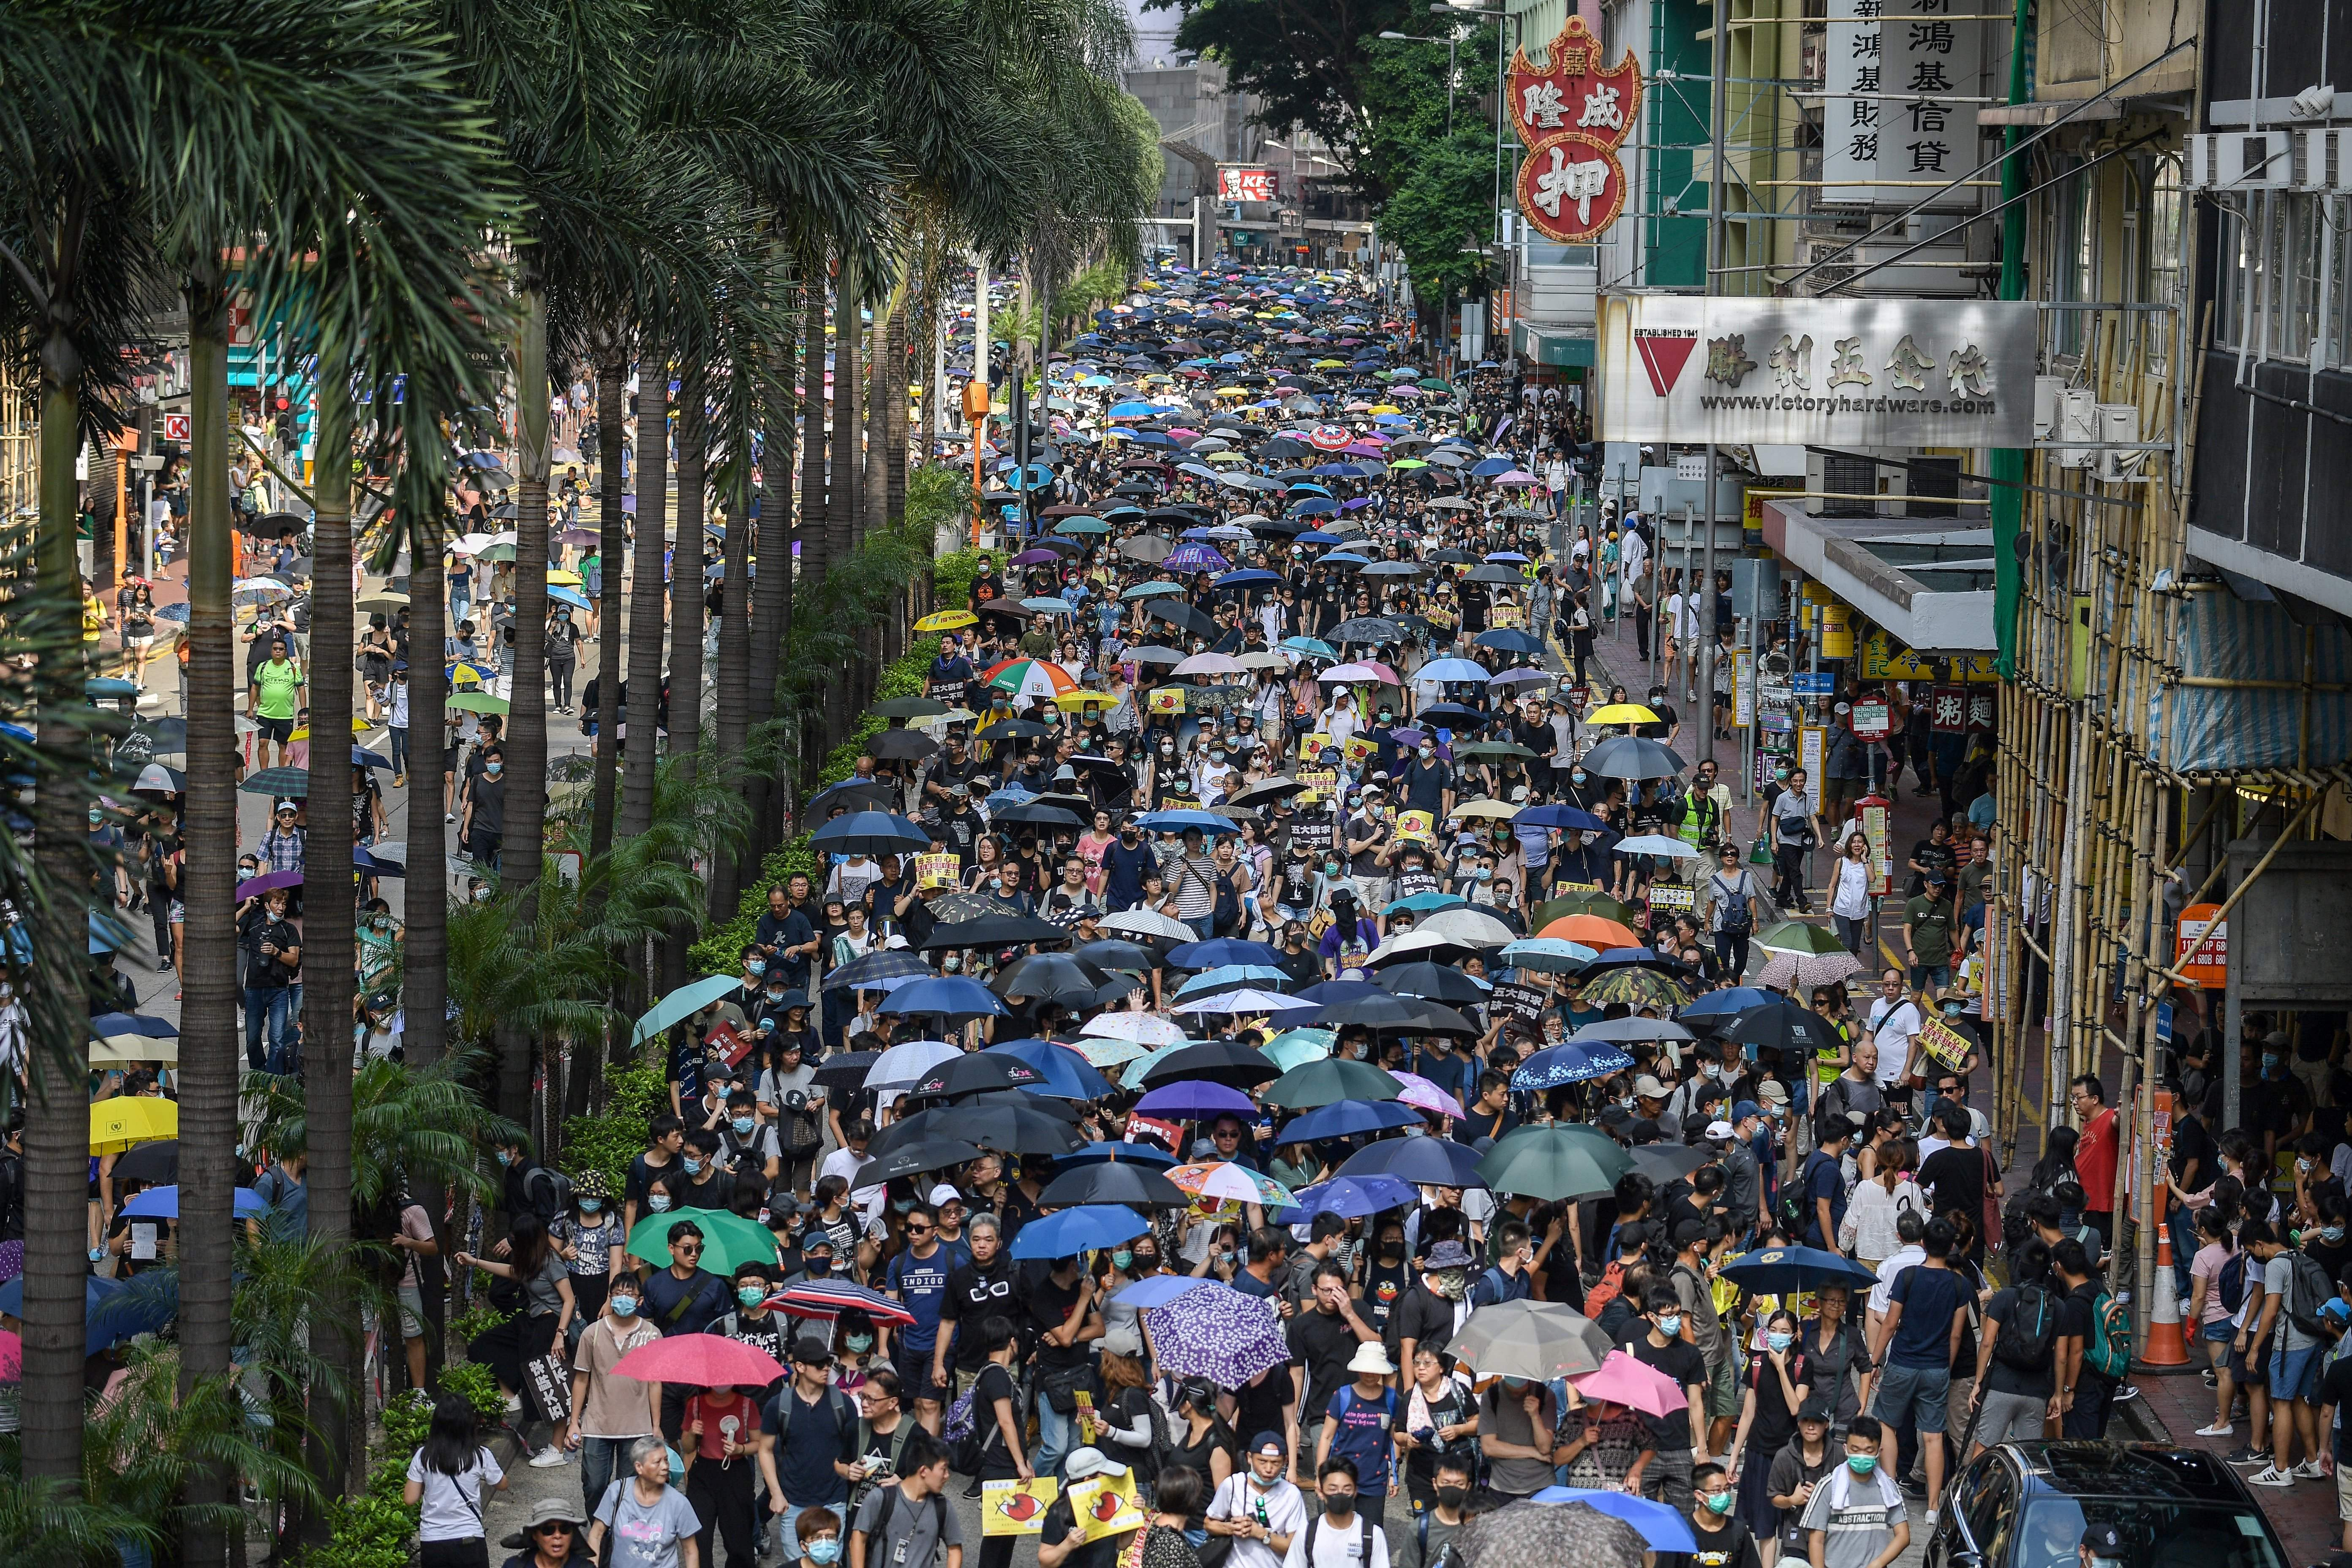 Protesters attend a pro-democracy march in Hong Kong on September 15, 2019.